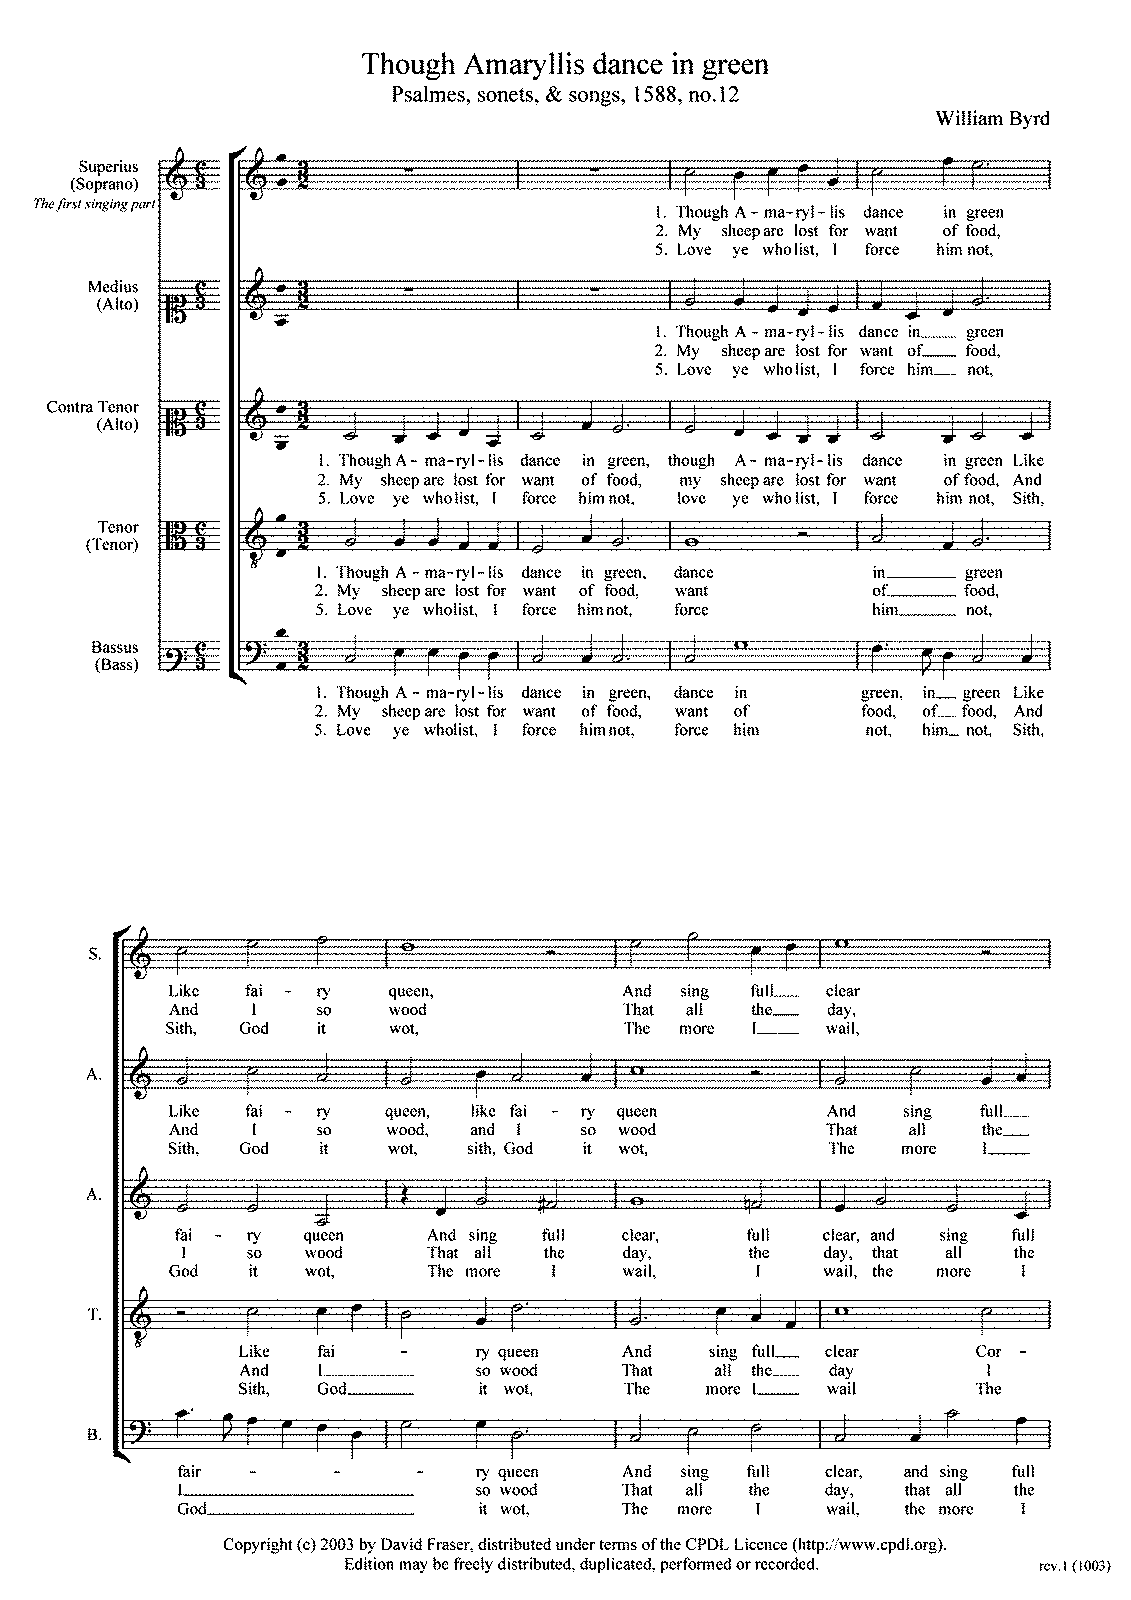 Byrd-though Amaryllis.pdf